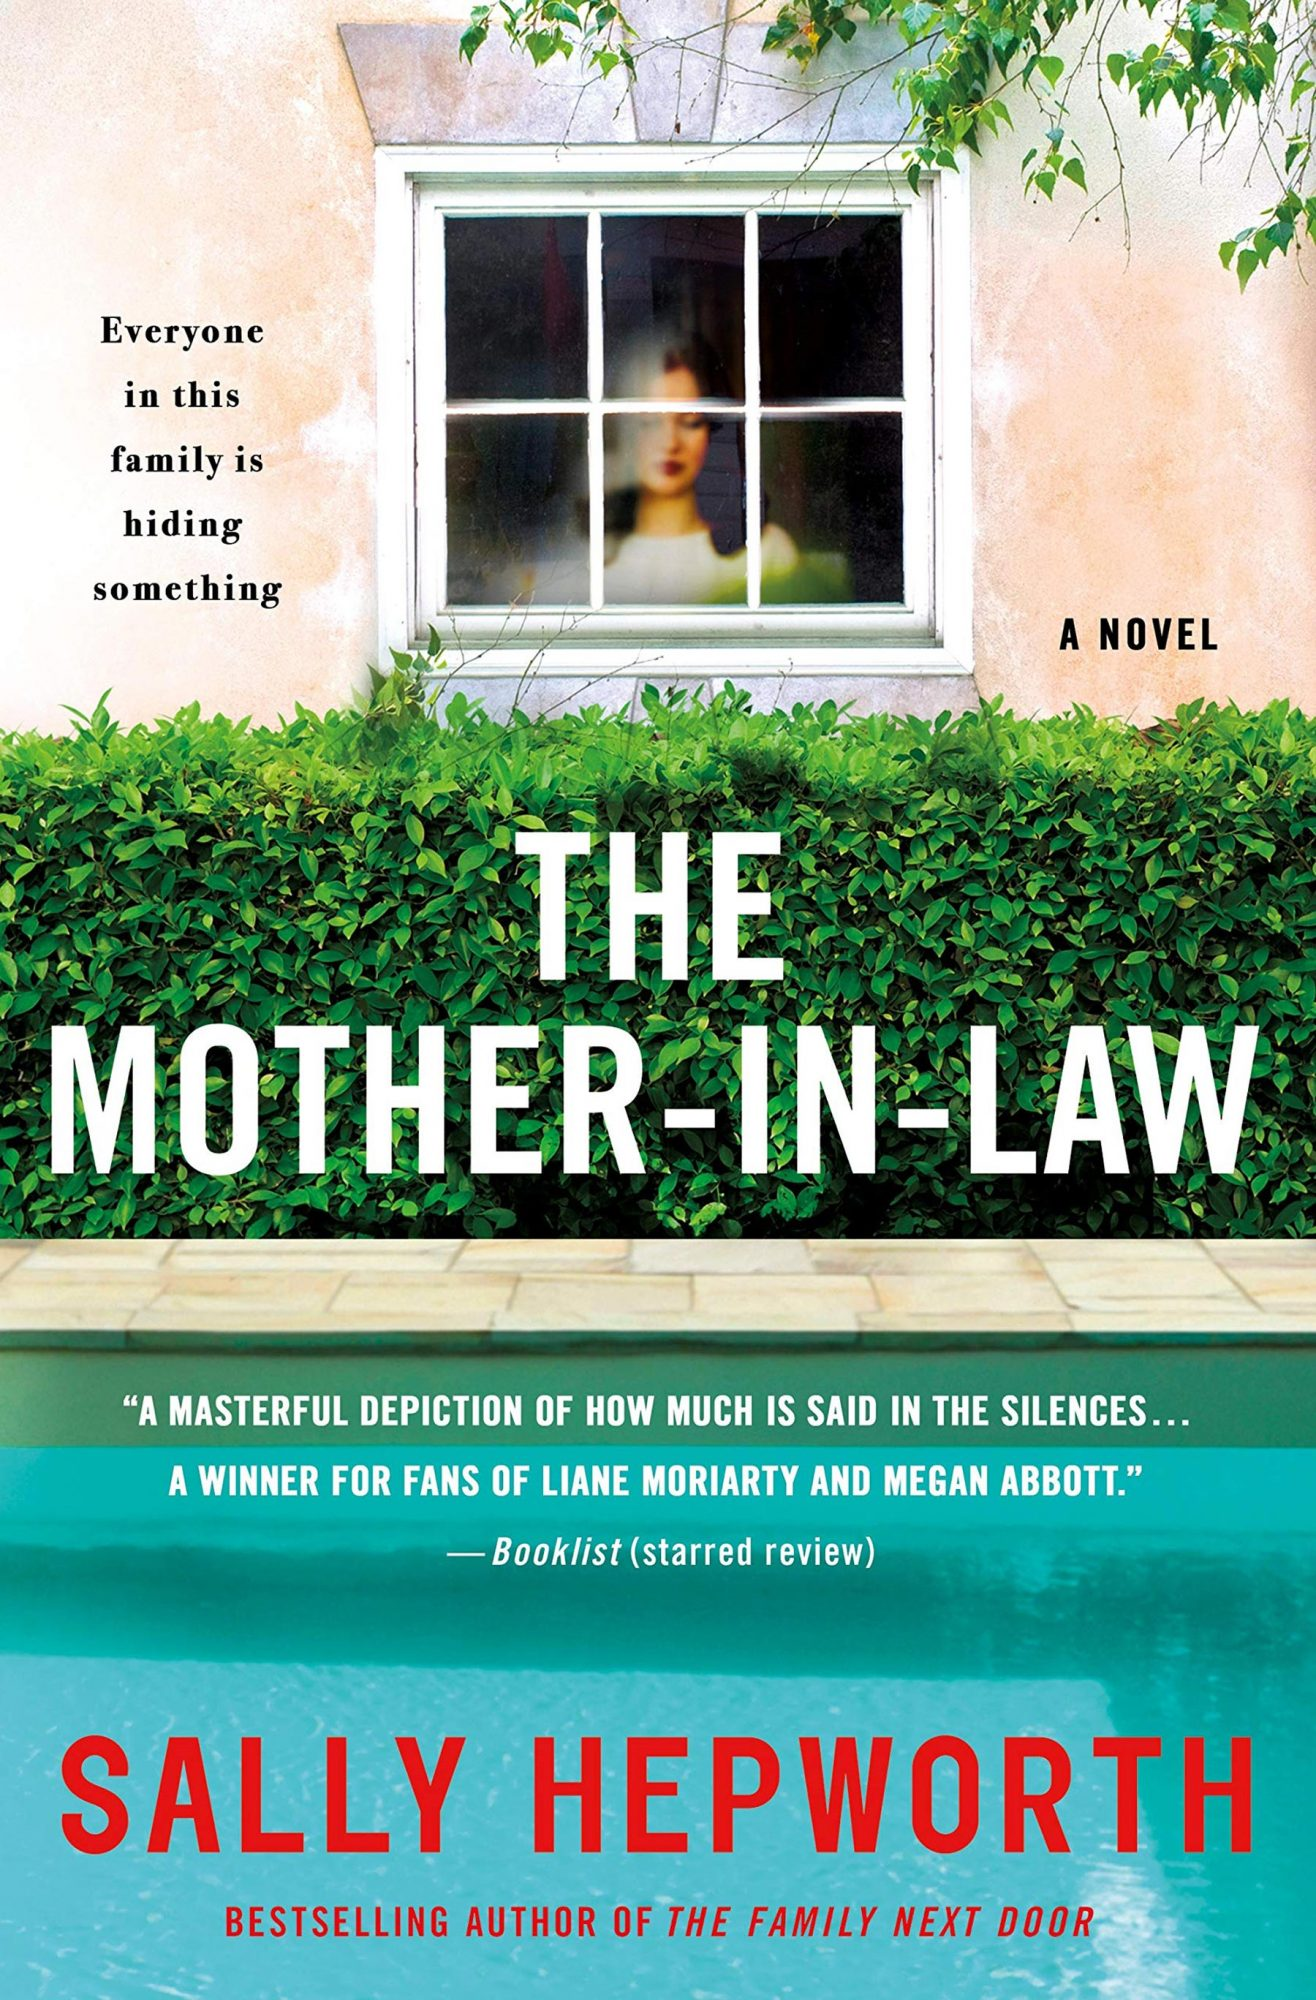 The Mother-in-Law by Sally Hepworth Publisher: St. Martin's Press